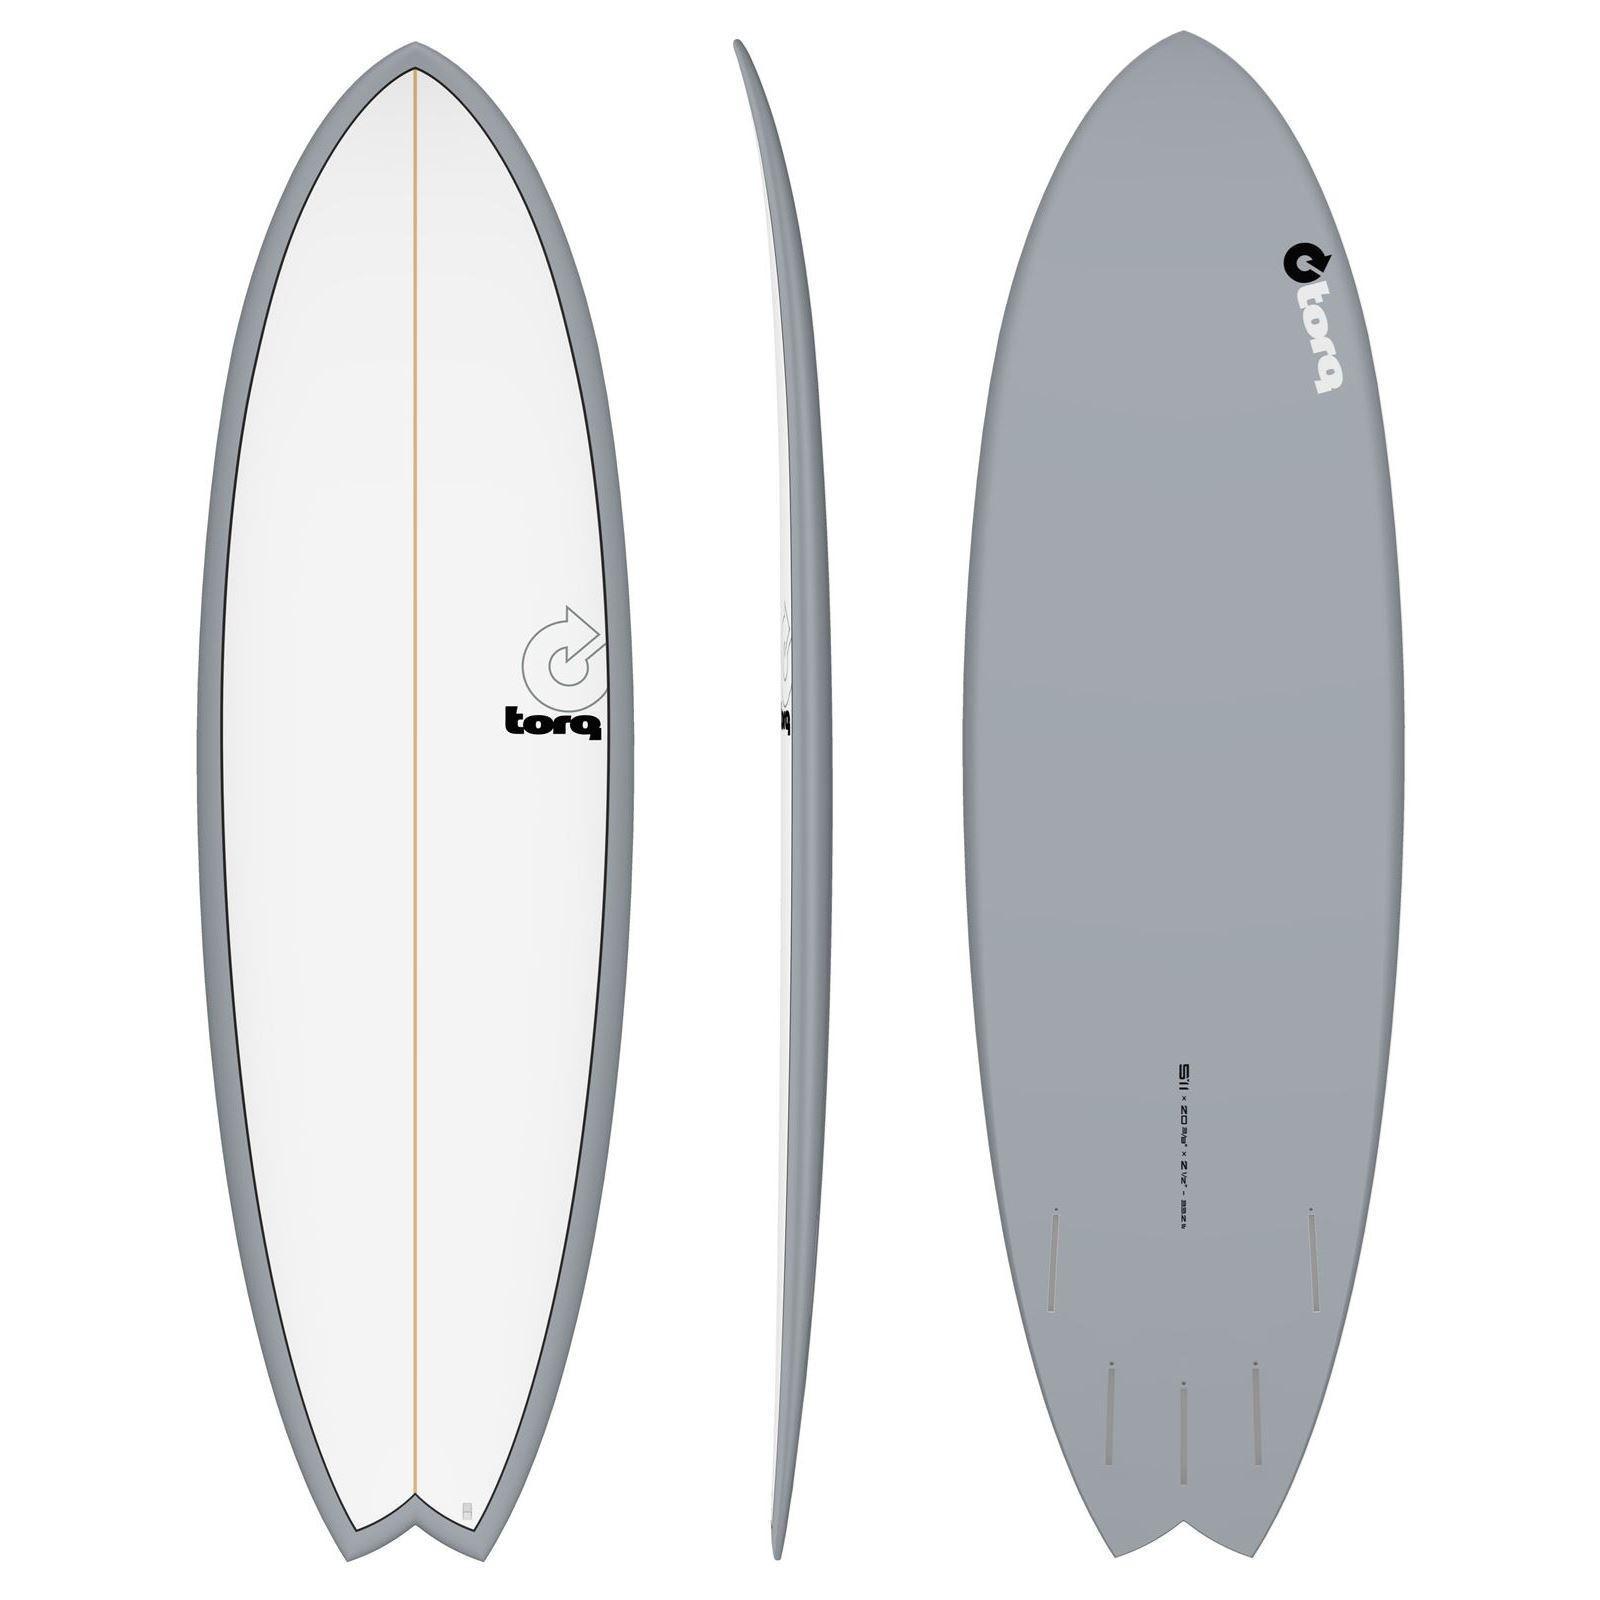 Surfboard TORQ Epoxy TET 5.11 Fish white Gray